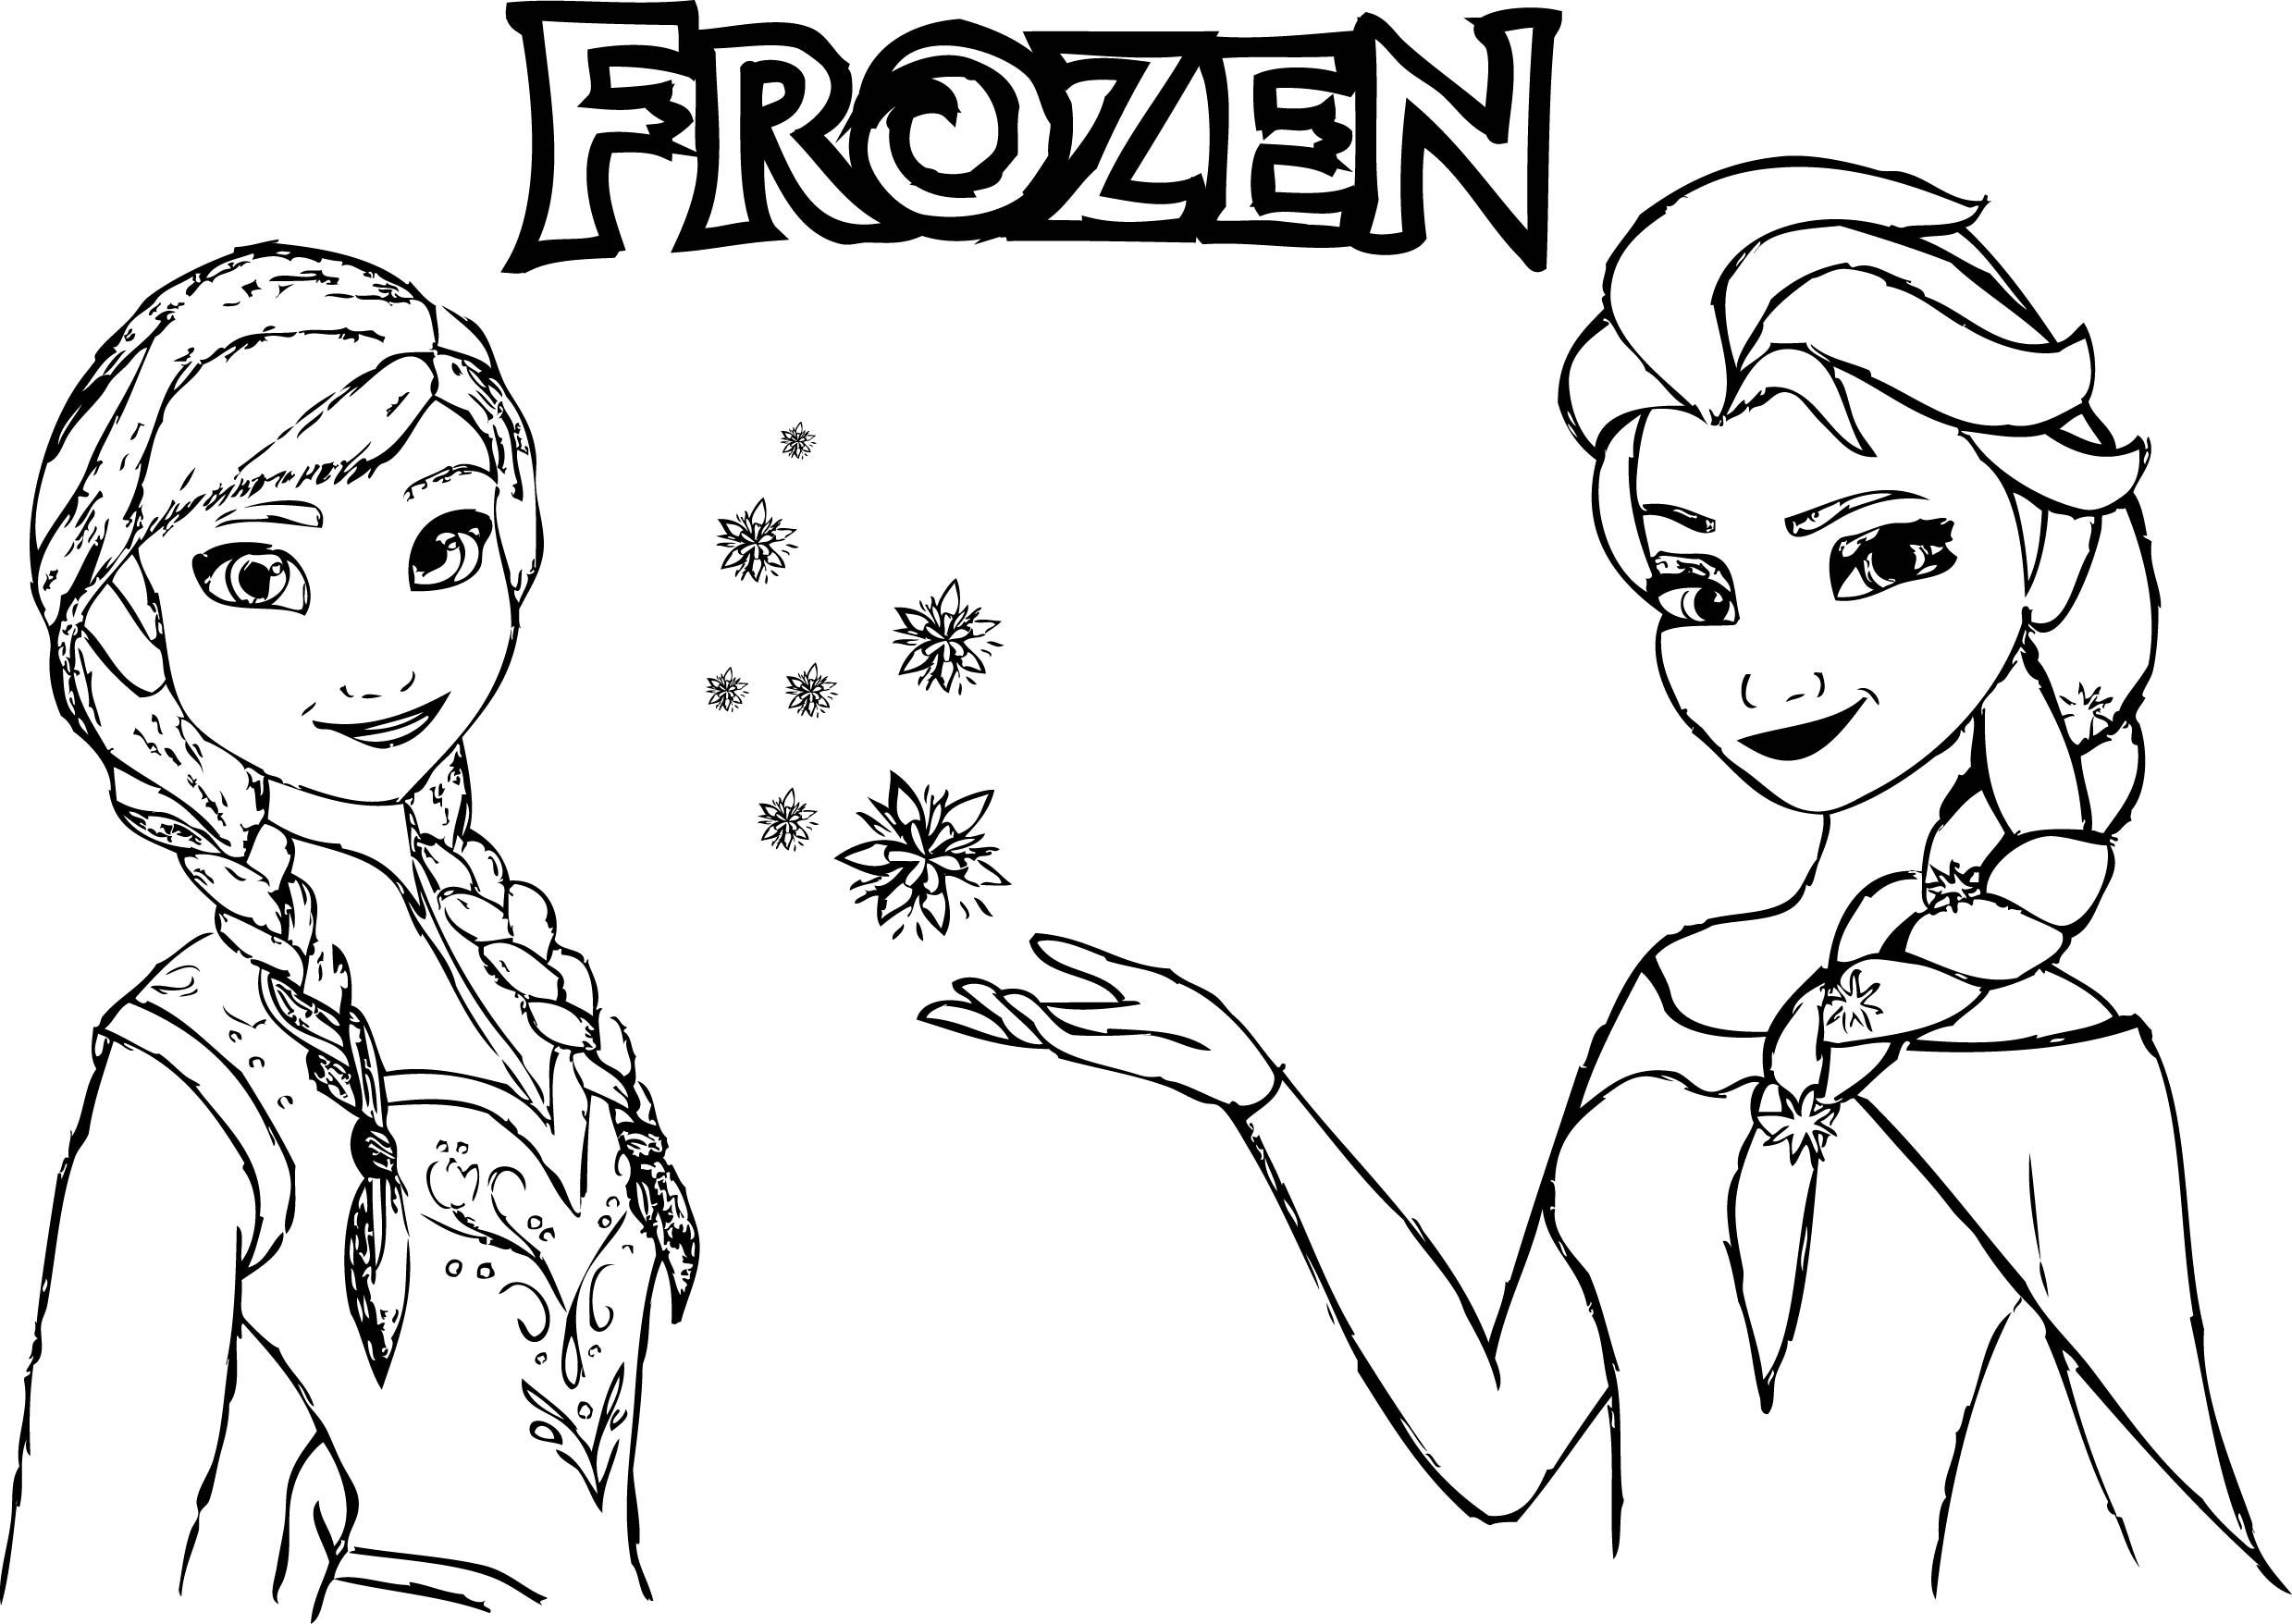 Frozen Anna Elsa Magic Coloring Wecoloringpage Elsa Coloring Pages Disney Princess Coloring Pages Princess Coloring Pages